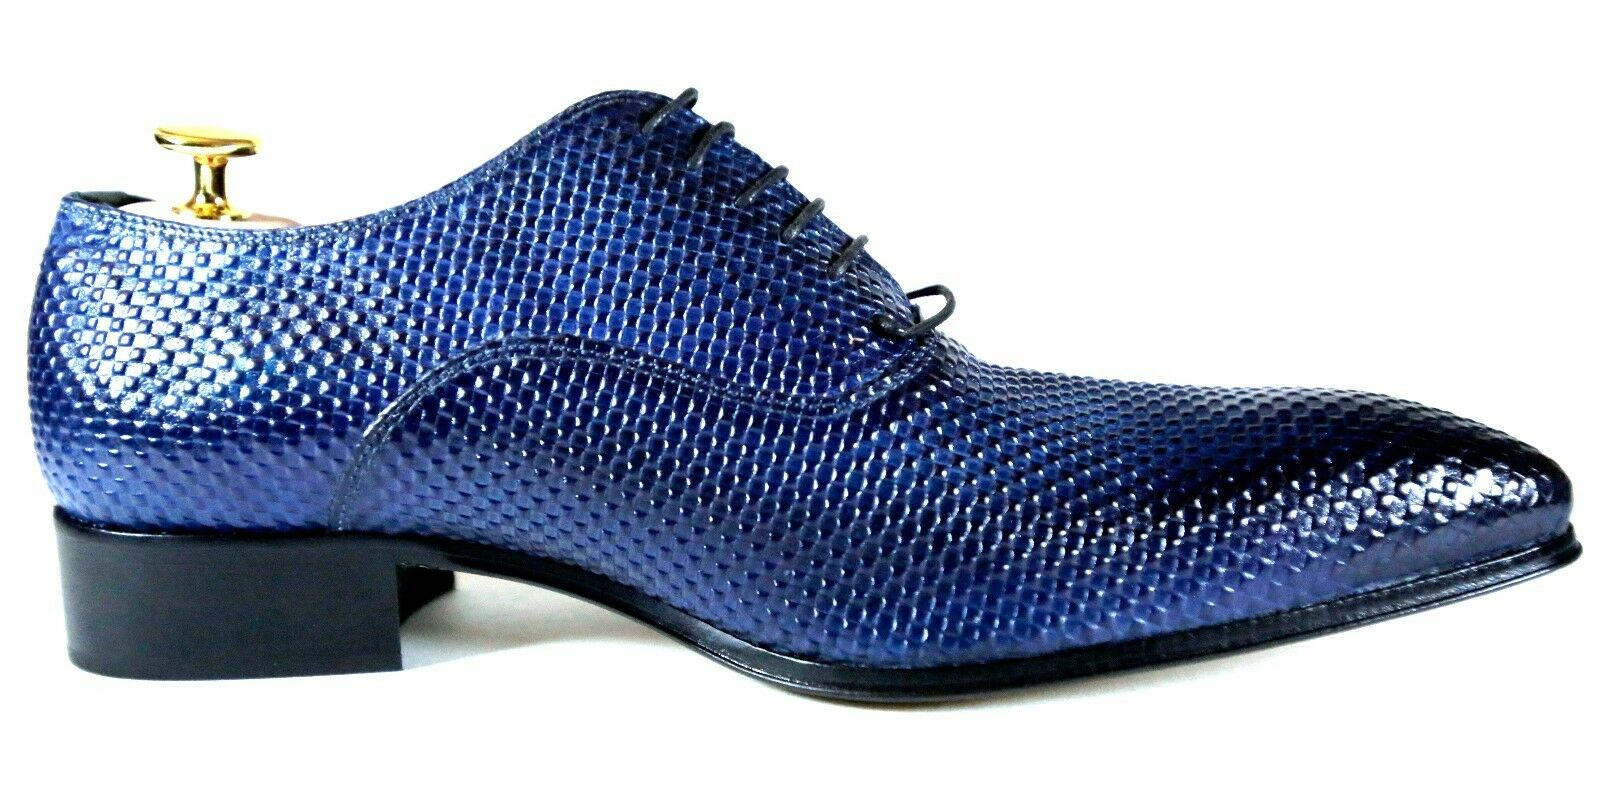 Ivan Troy Blau Handmade Italian Leather Leather Leather Dress schuhe Oxford Office schuhe  42, 43 f07bbc